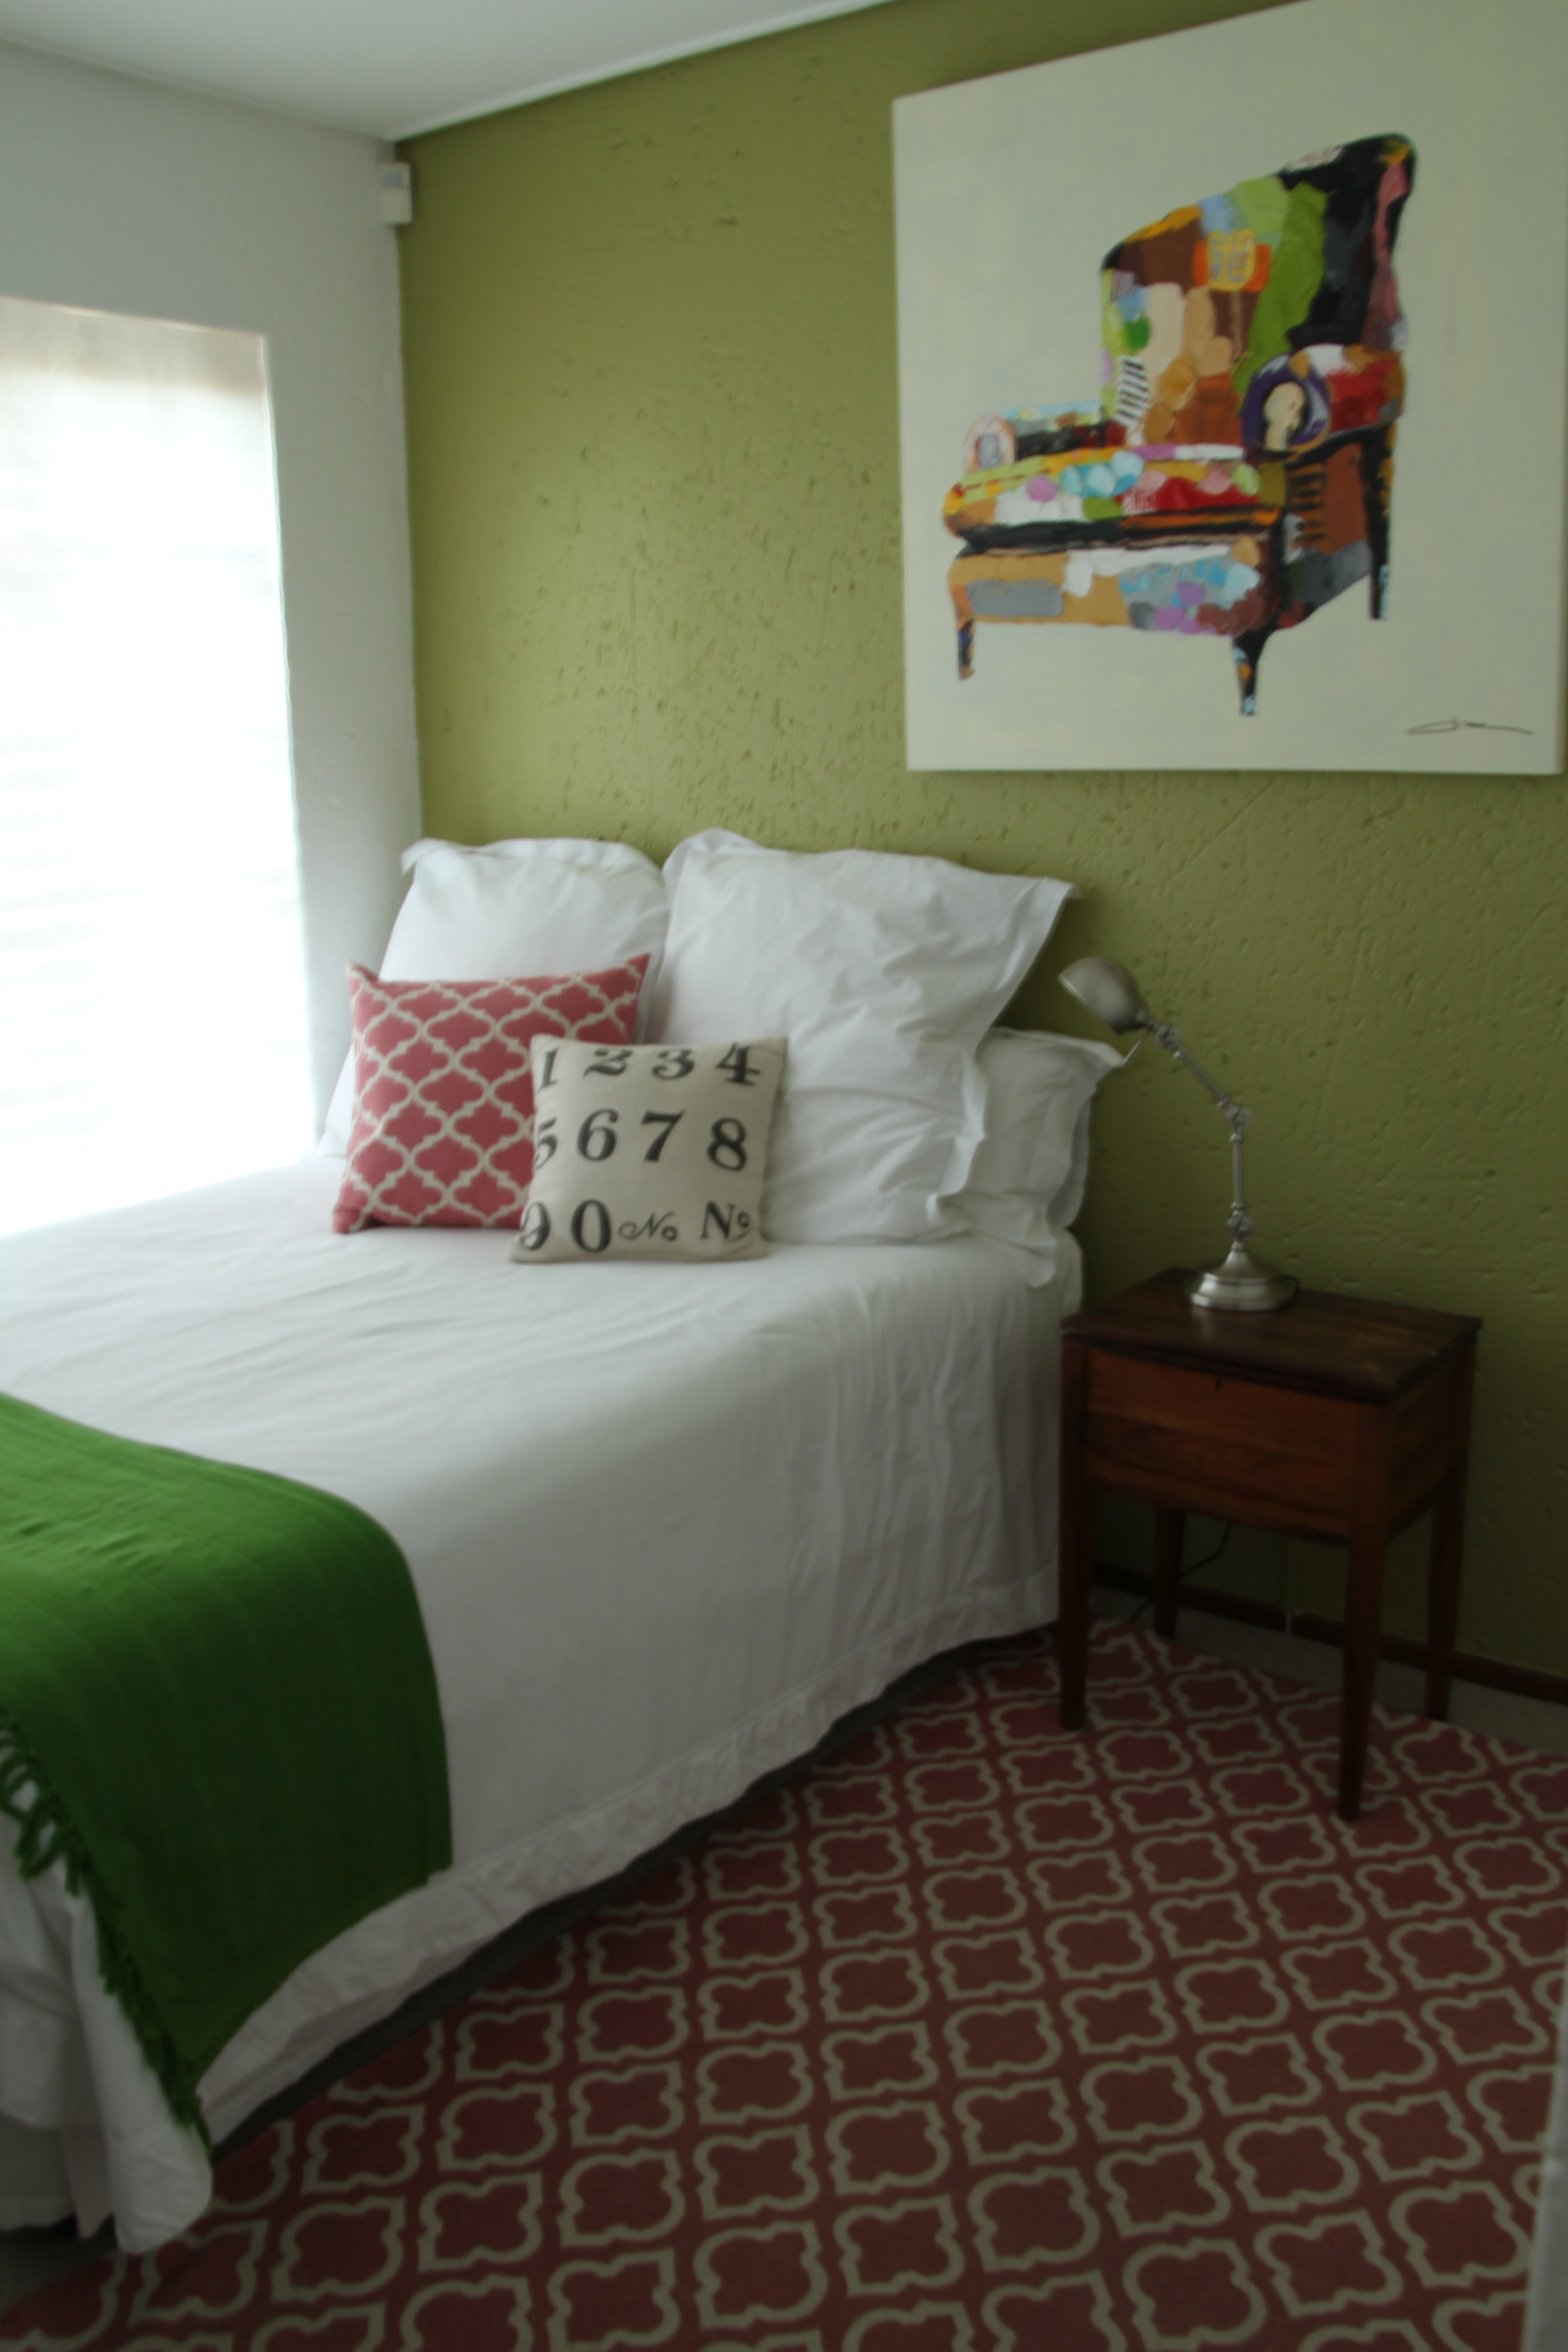 Before - This used to be a mossy green and vintage pink guest room inspired by Charles Dickens' Great Expectations.